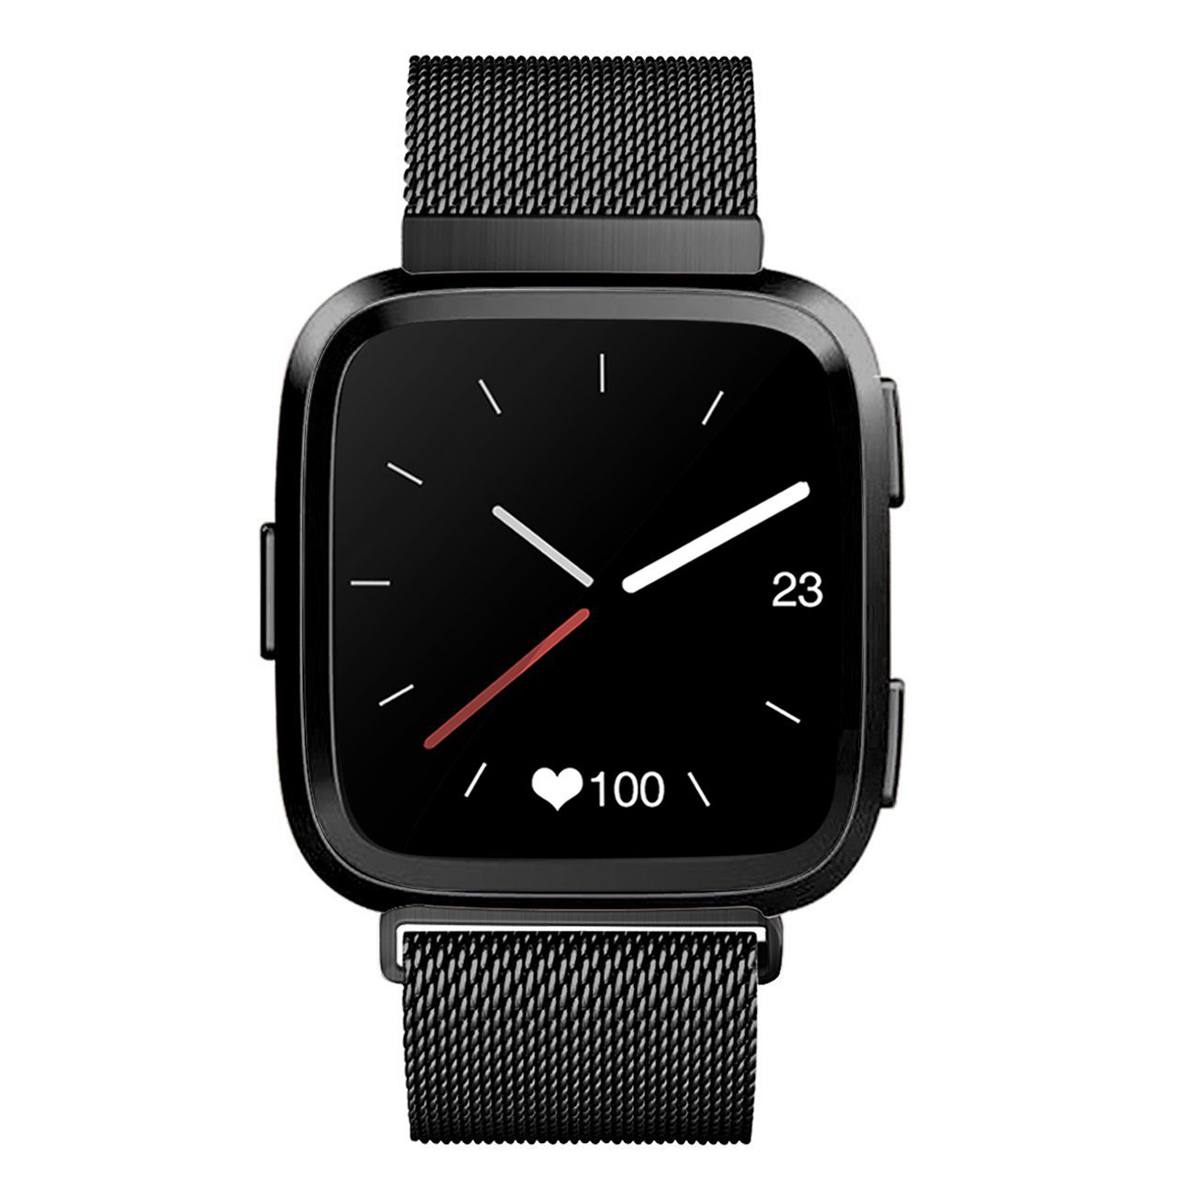 Milan magnetic ring stainless steel strap for Fitbit Versa